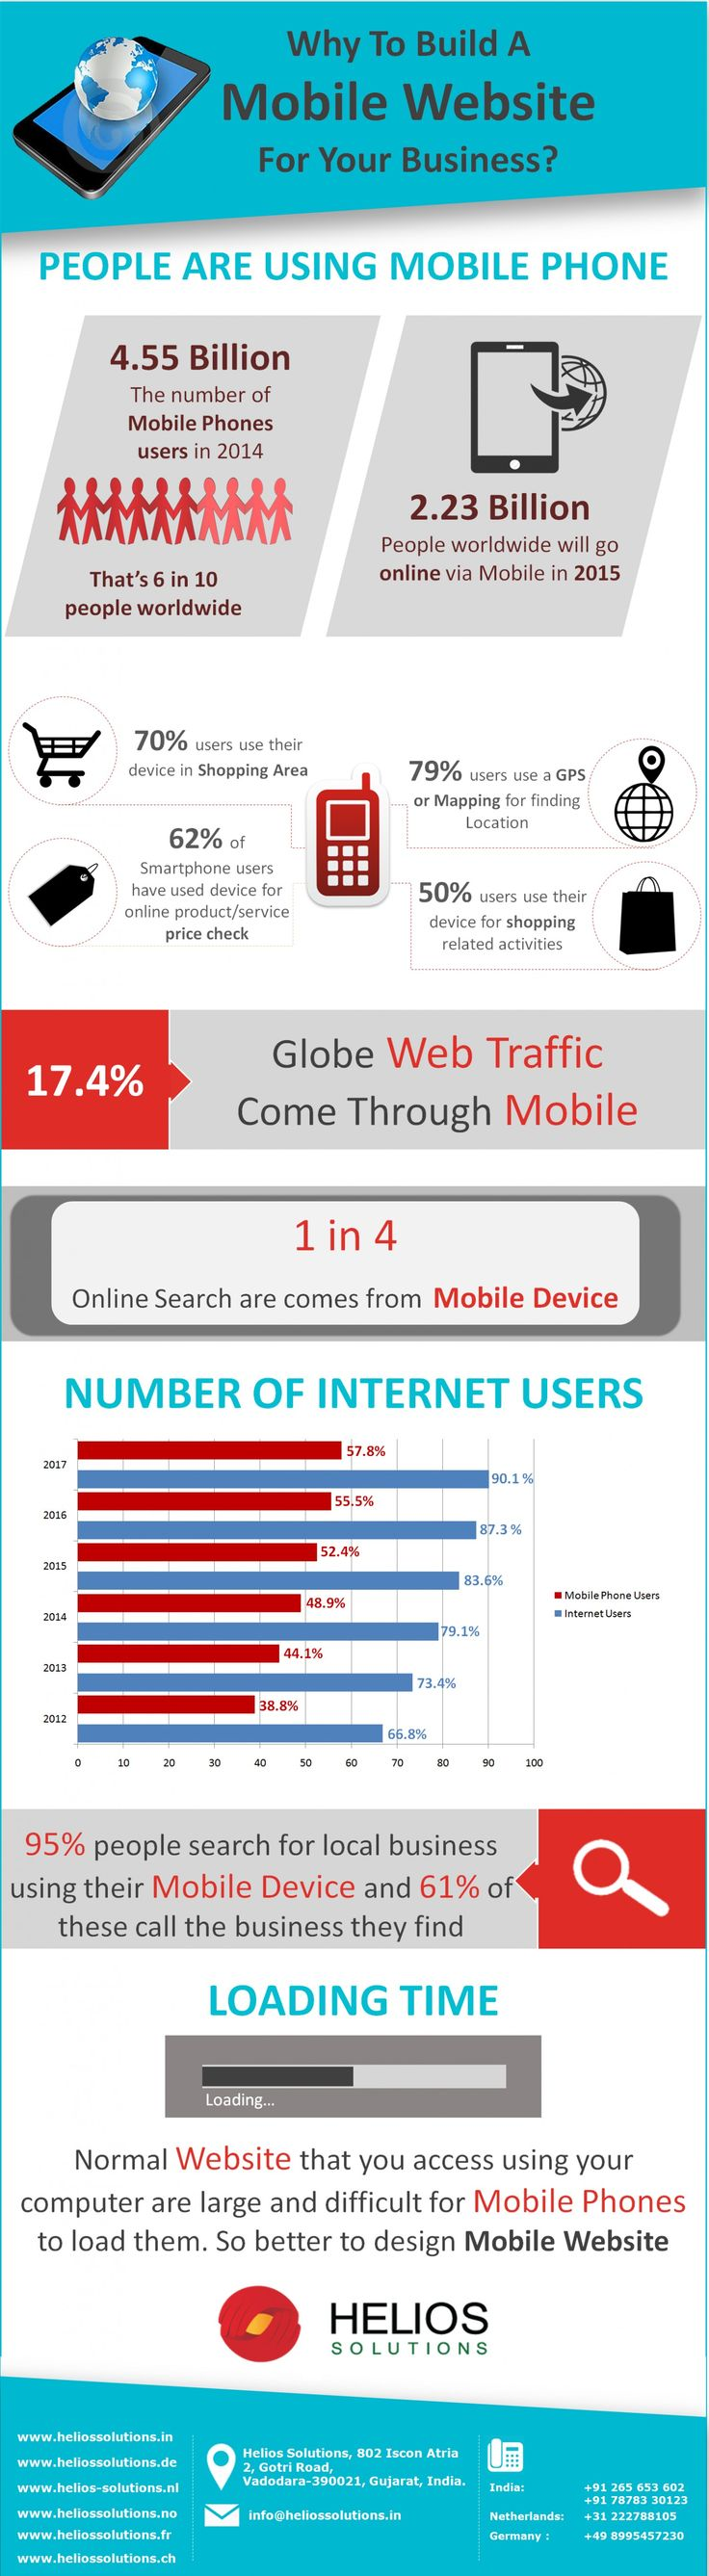 #Infographic: Why Build A #Mobile Website For Your Business for 2015? #WebDesign